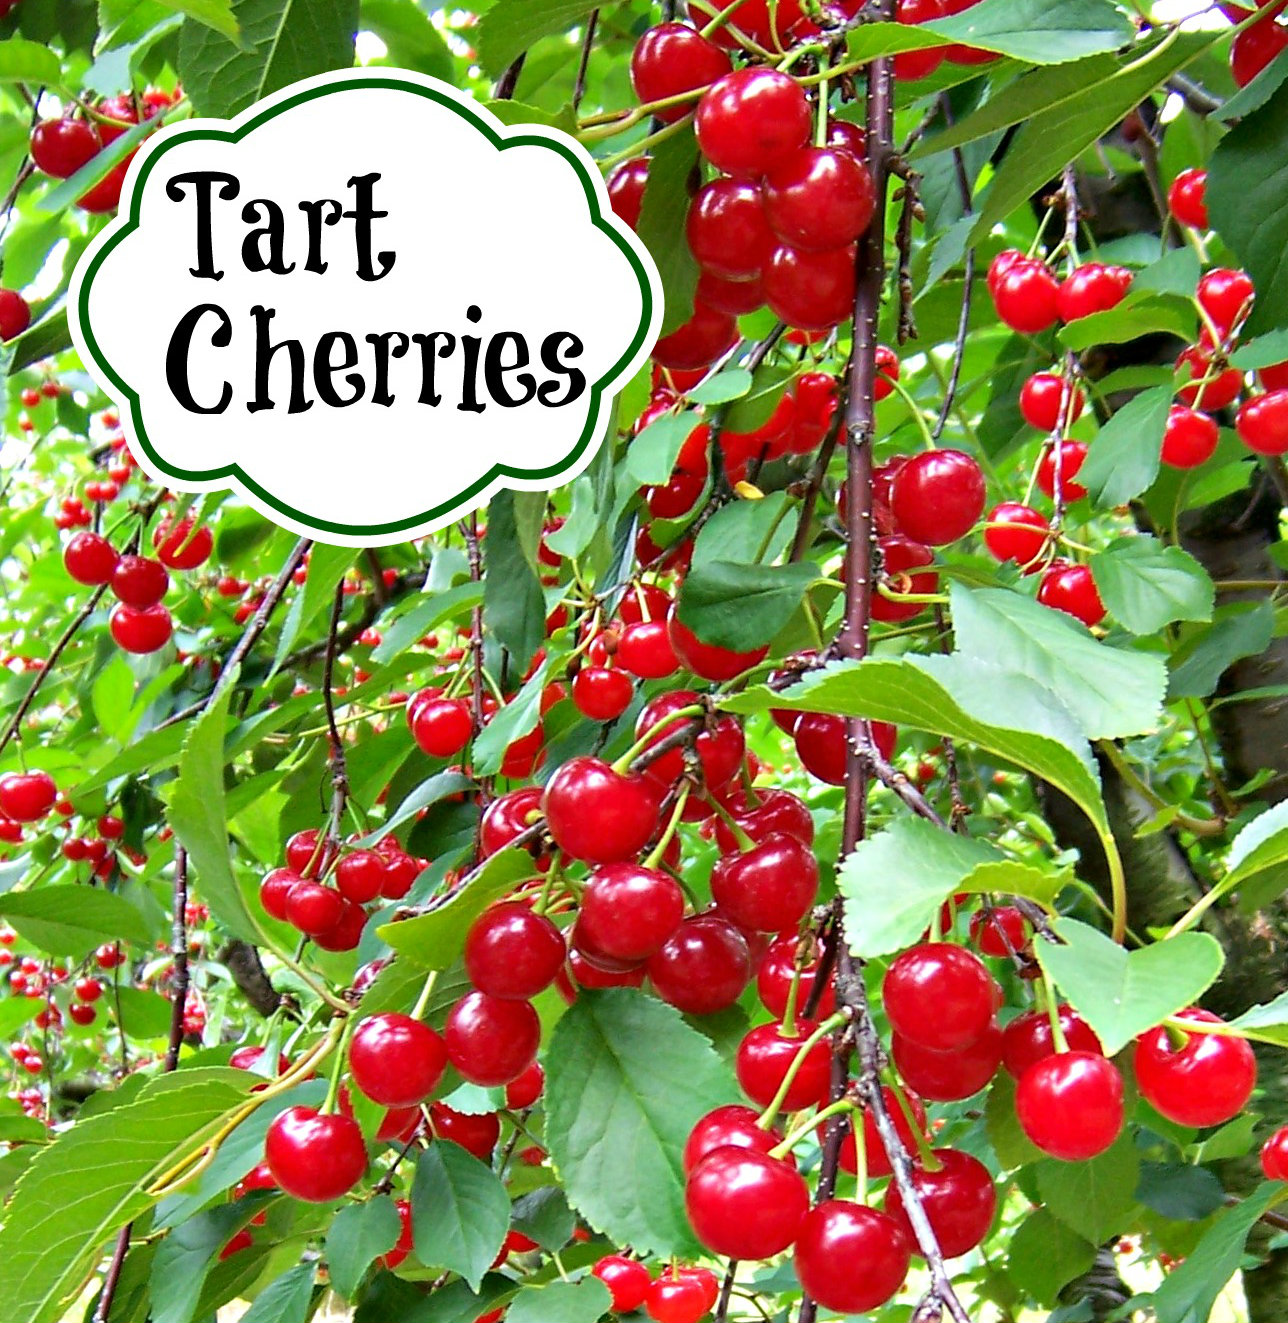 Tart-Cherry-banner-1-cropped